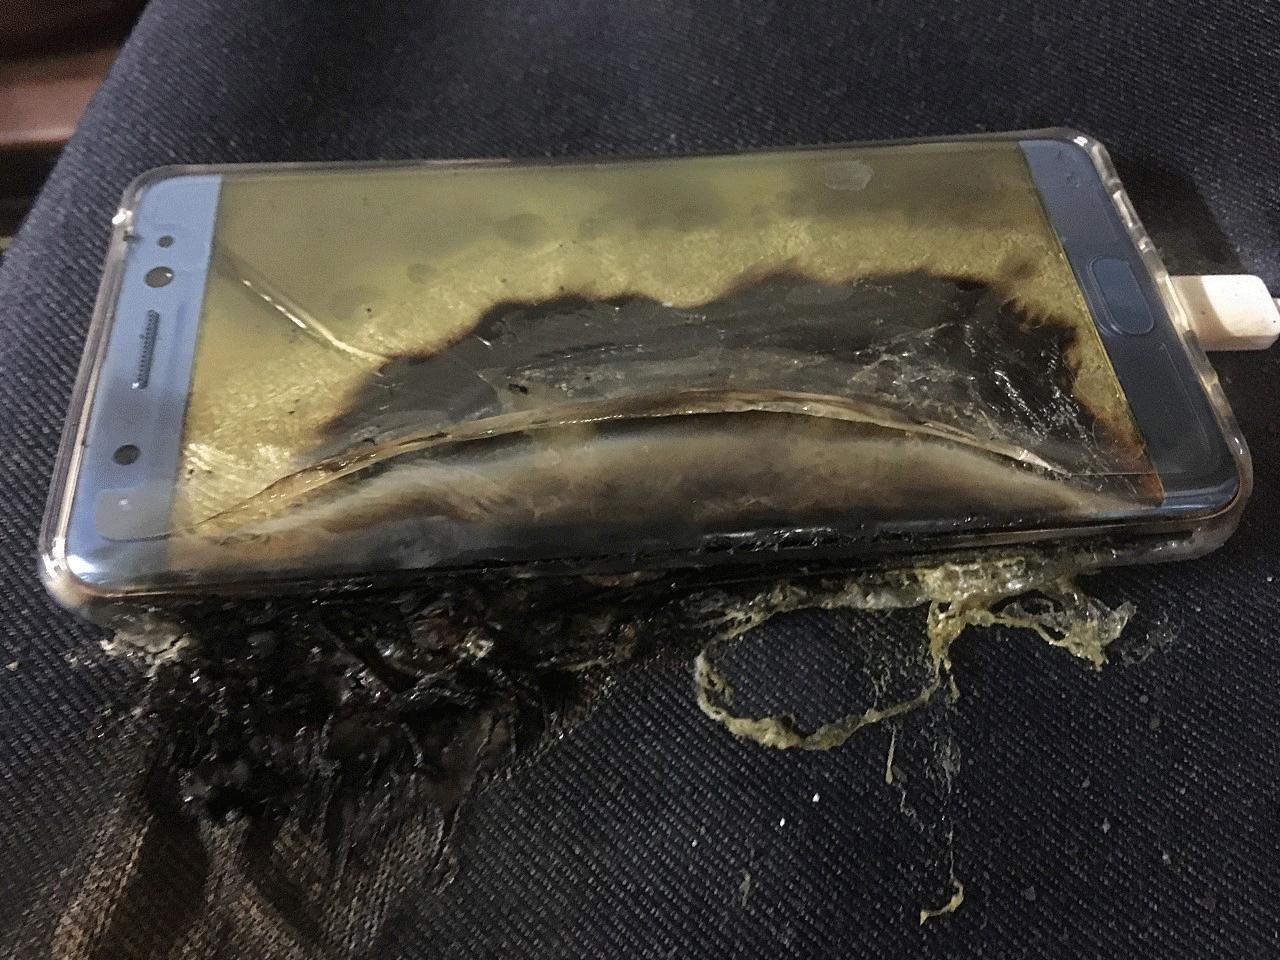 Phone caught fire